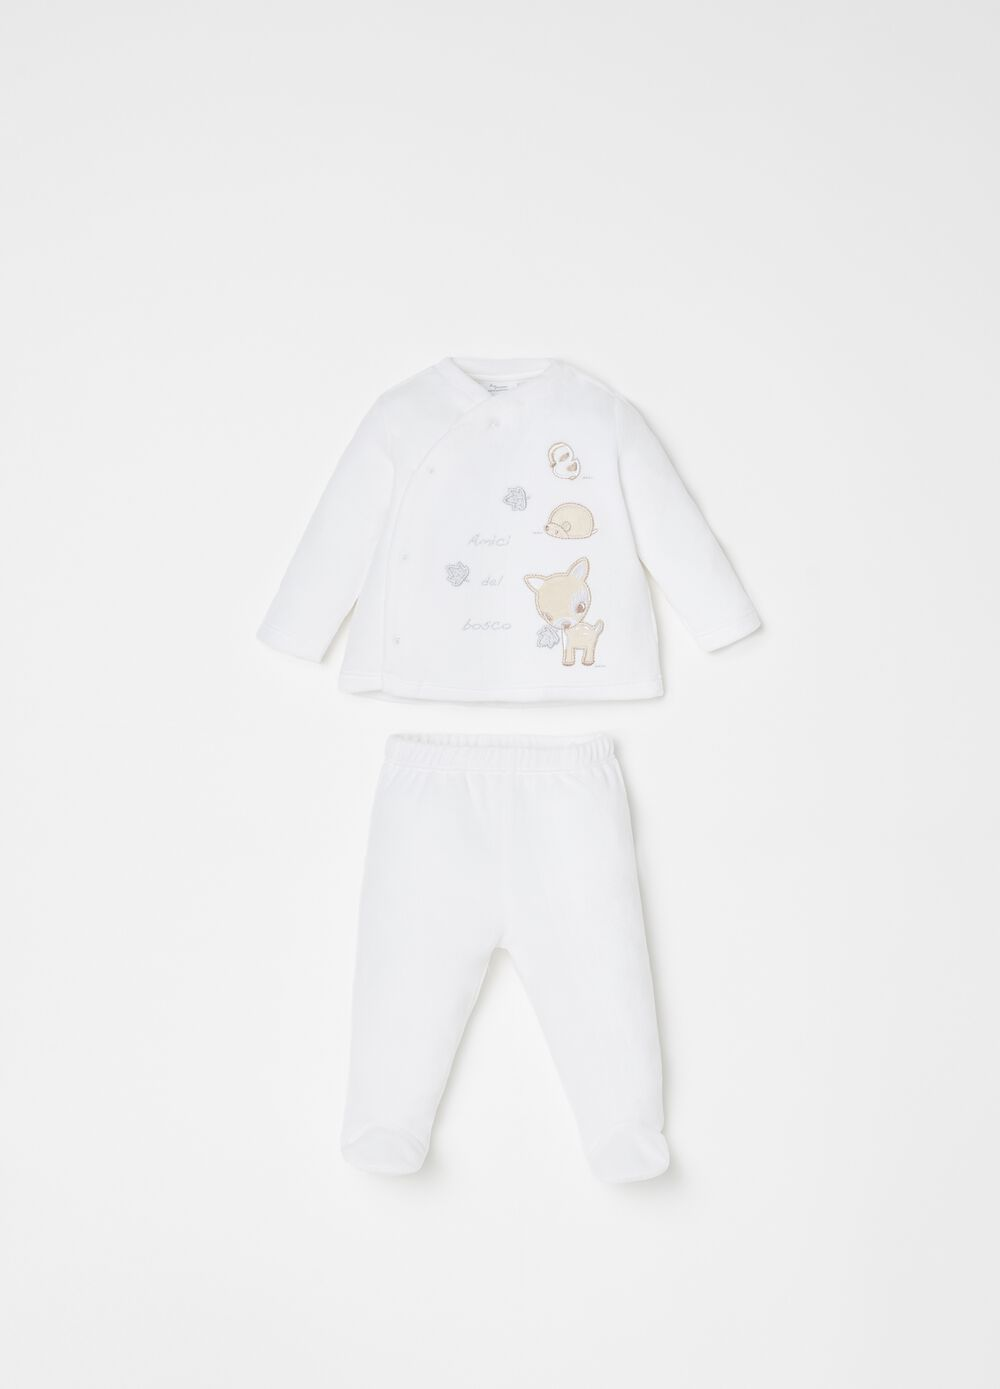 T-shirt and trousers set with animal embroidery